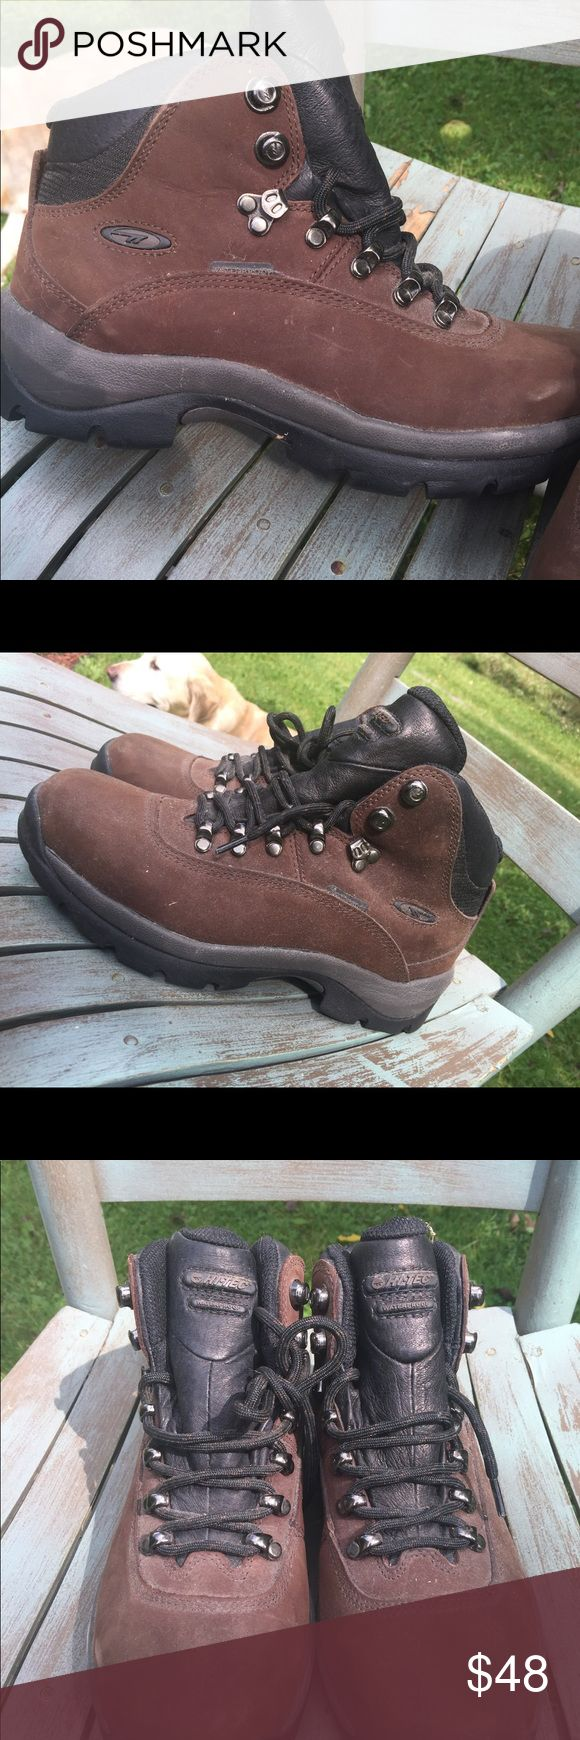 Women's Hi-Tec Brown Leather Hiking Boots Size 8M Women's Hi-Tec Brown Leather Hiking Boots Size 8M. These are waterproof. These are new, no tag. A little dusty from sitting Hi-Tec Shoes Lace Up Boots